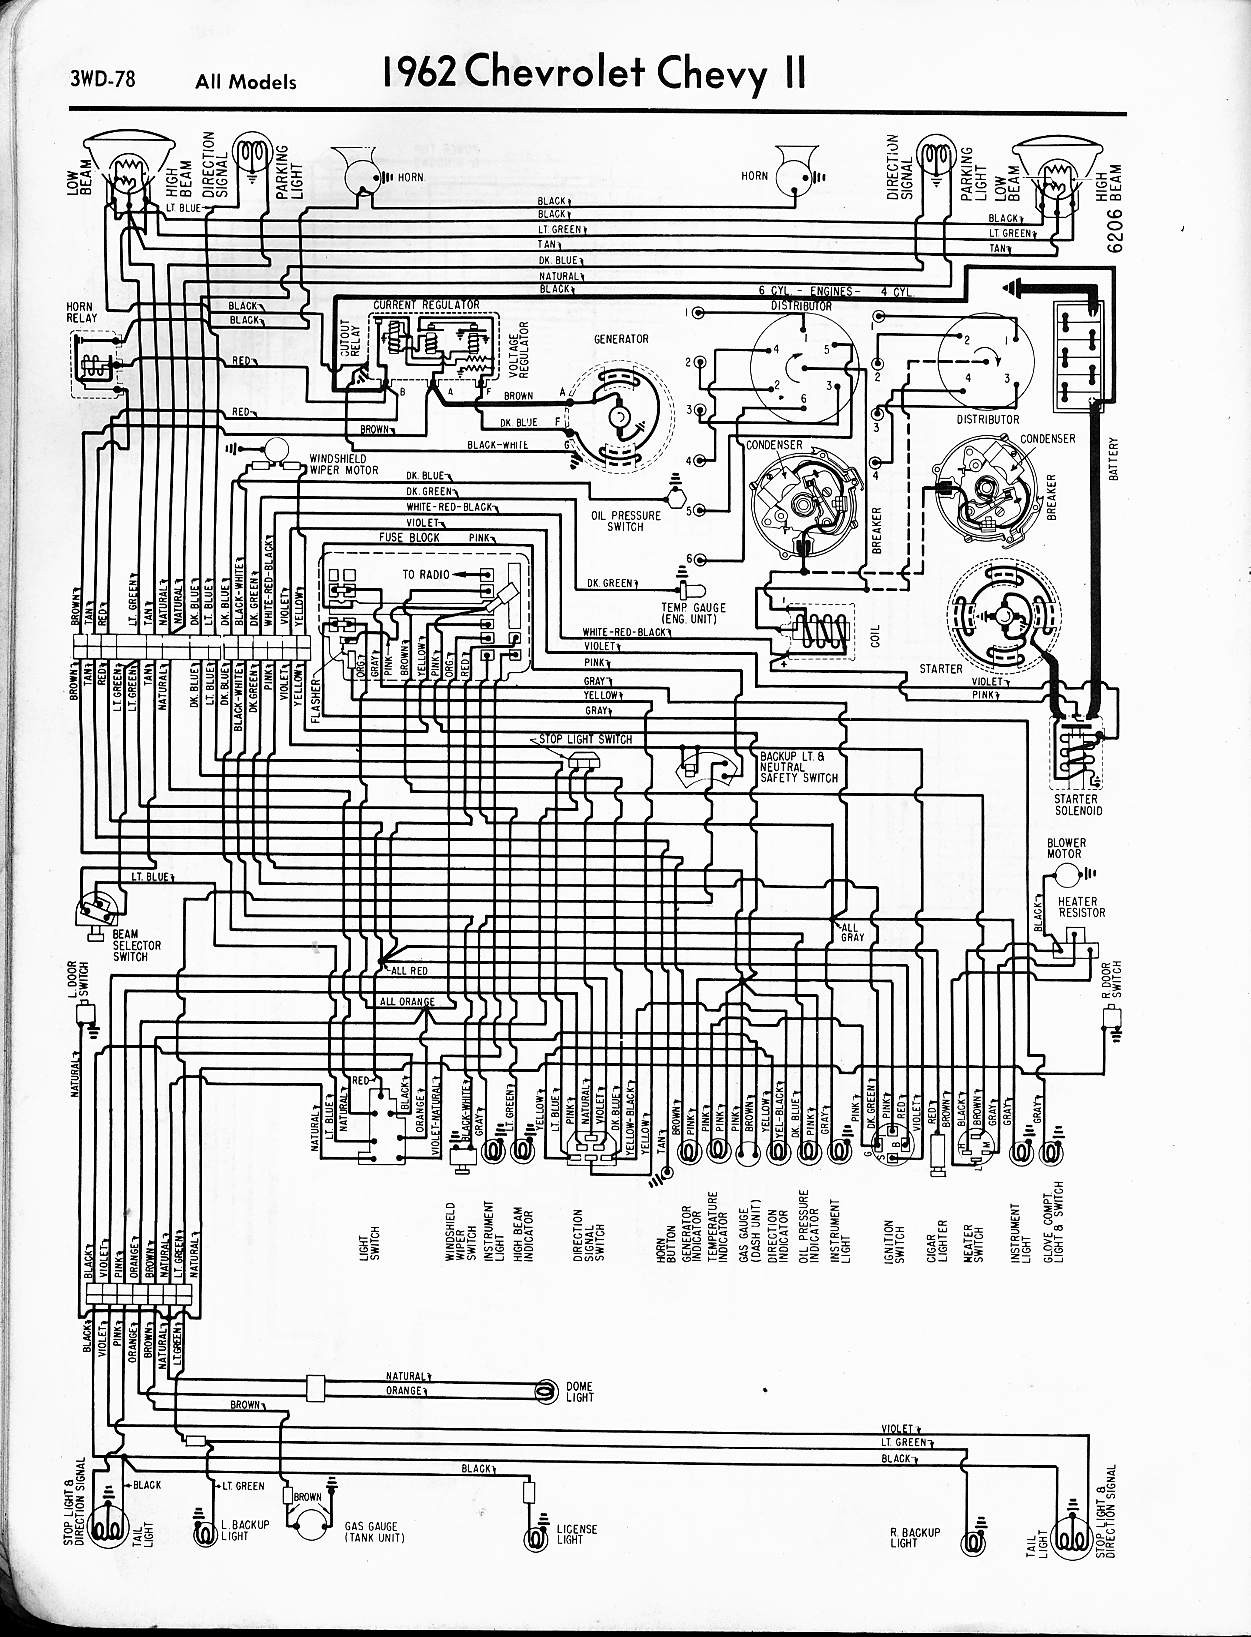 2005 Impala Engine Diagram 57 65 Chevy Wiring Diagrams Of 2005 Impala Engine Diagram